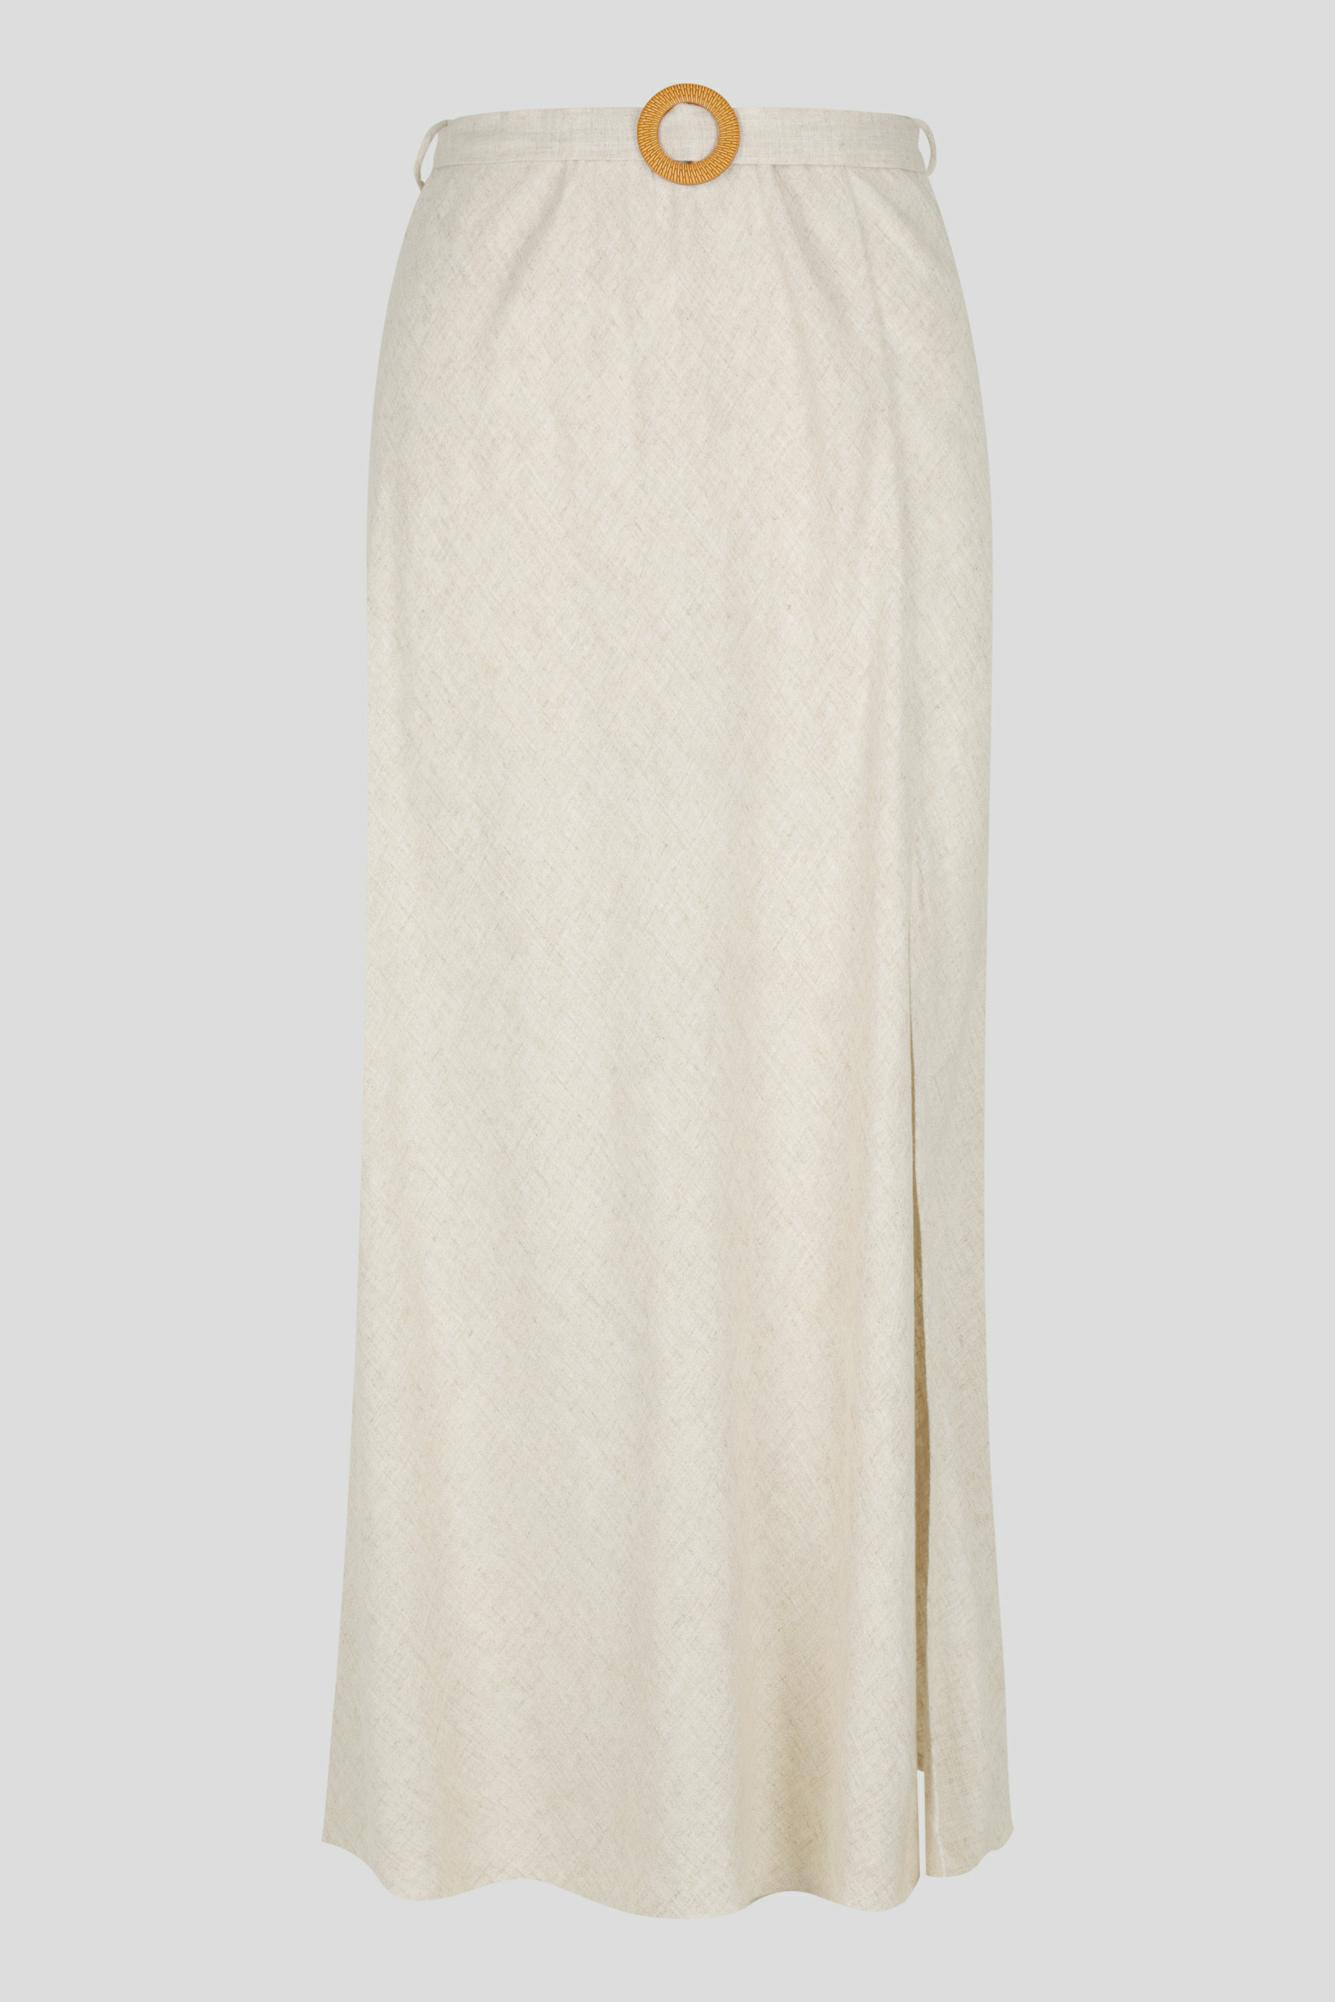 Arinos Skirt Ladies Skirt Colour is Beige